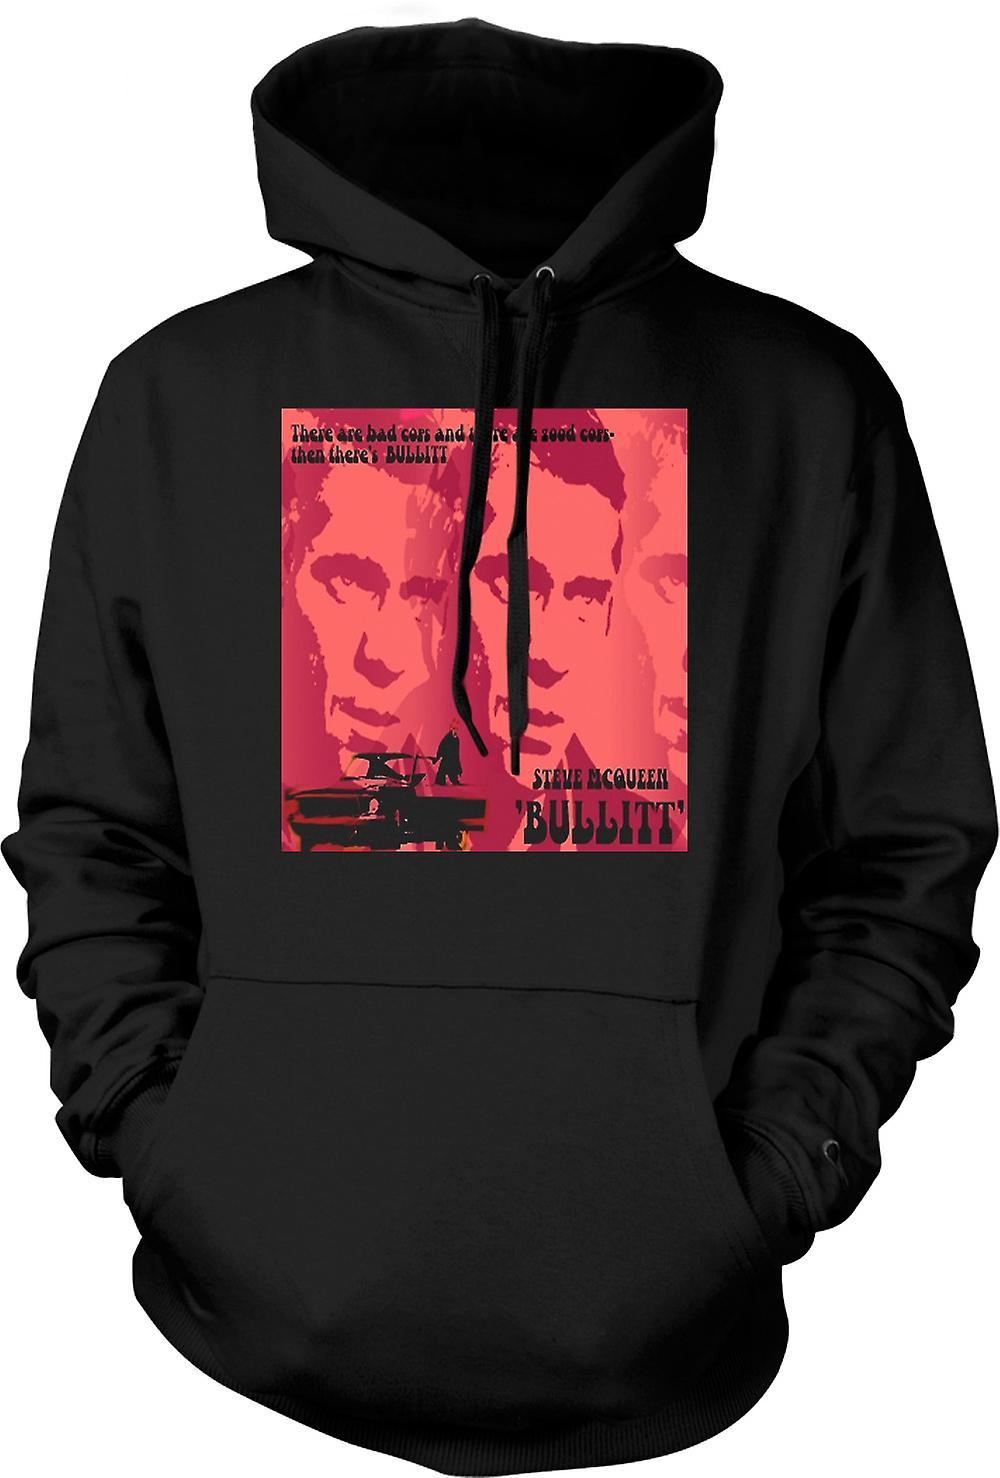 Enfant Sweat Capuche - Steve McQueen Bullit Good Cop